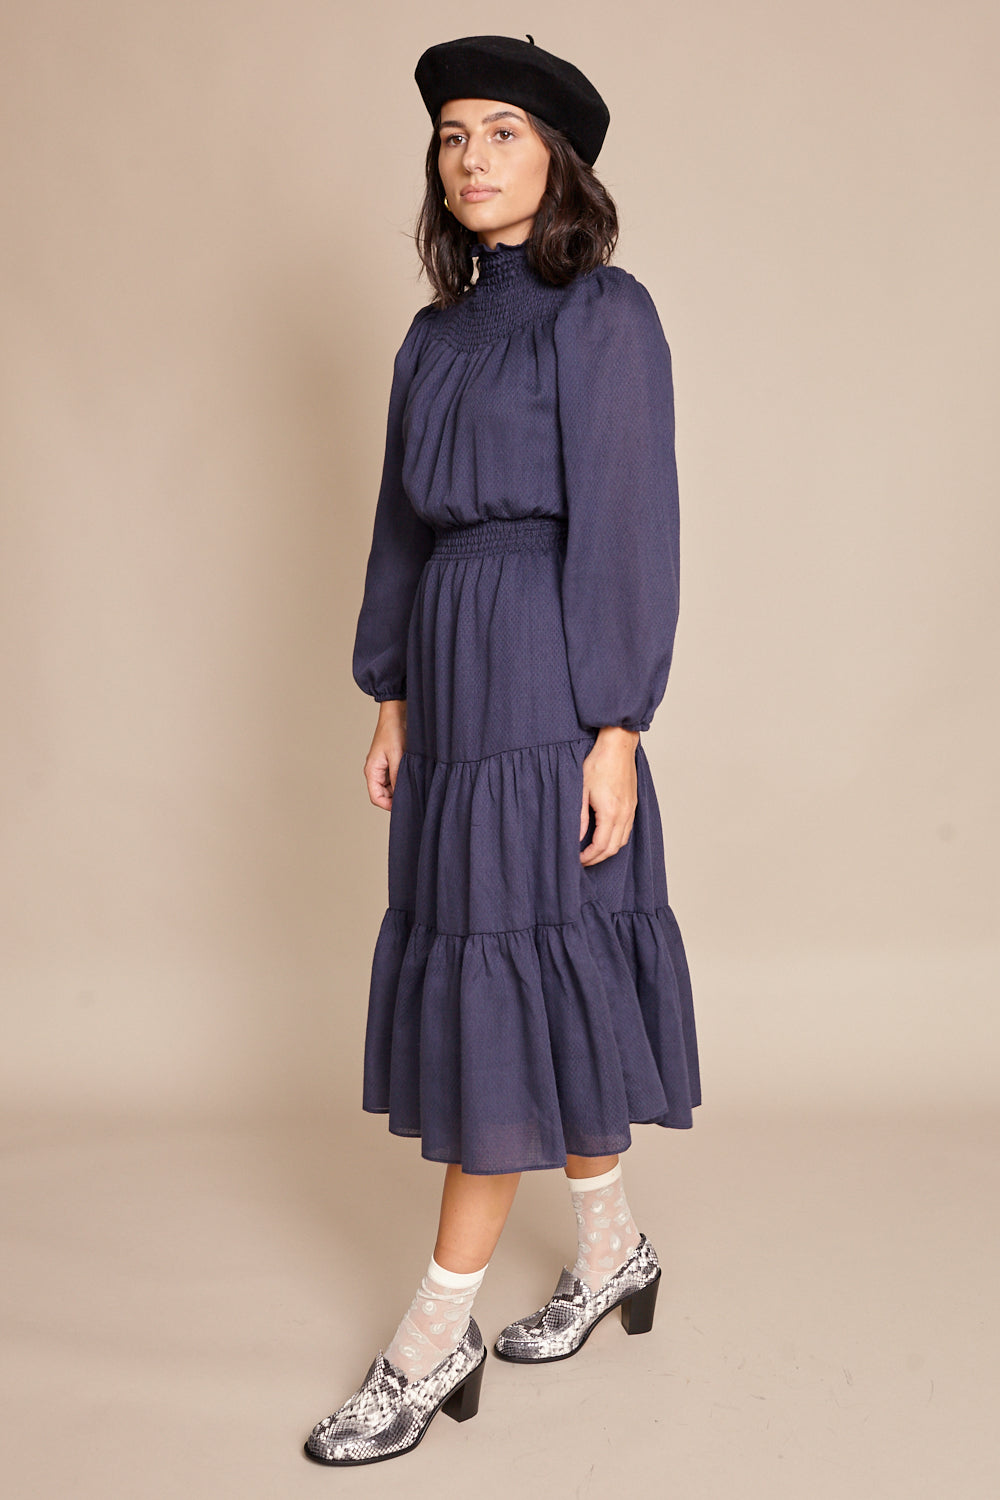 Warm Daisy Dress in Navy - Vert & Vogue